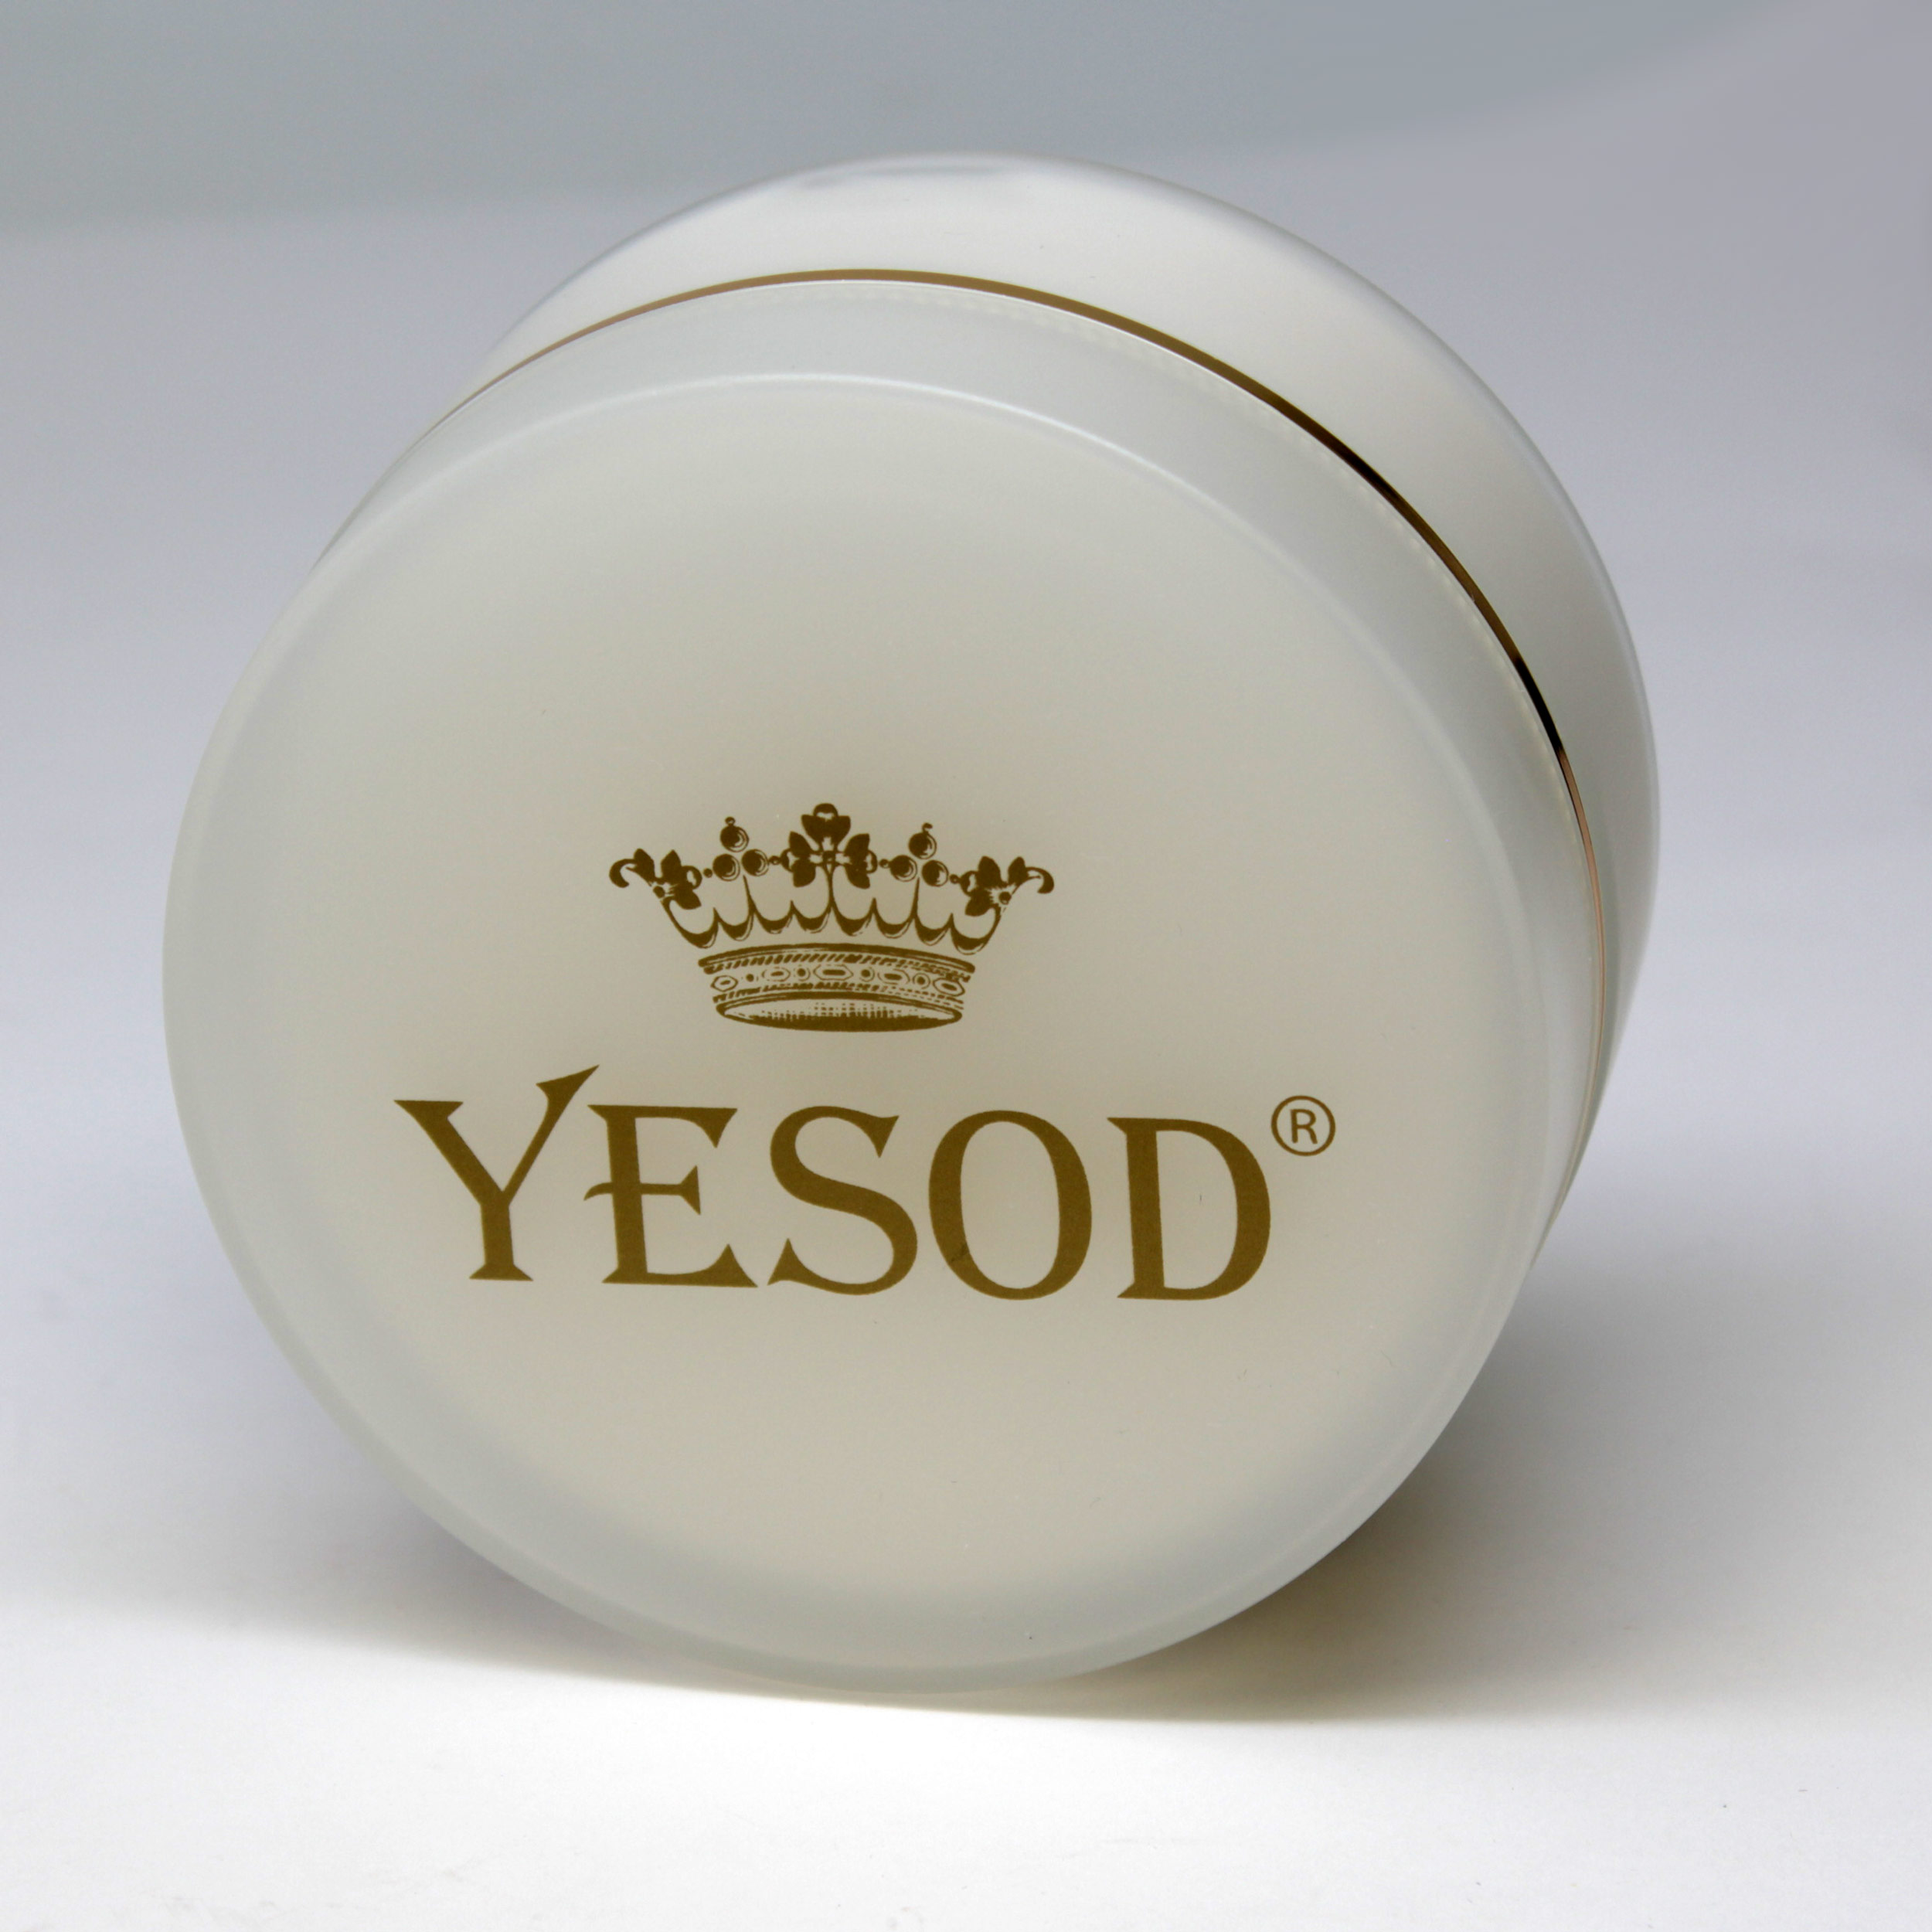 Yesod Perfumed Cream For The Body Davidic Dynasty Is Dedicated To